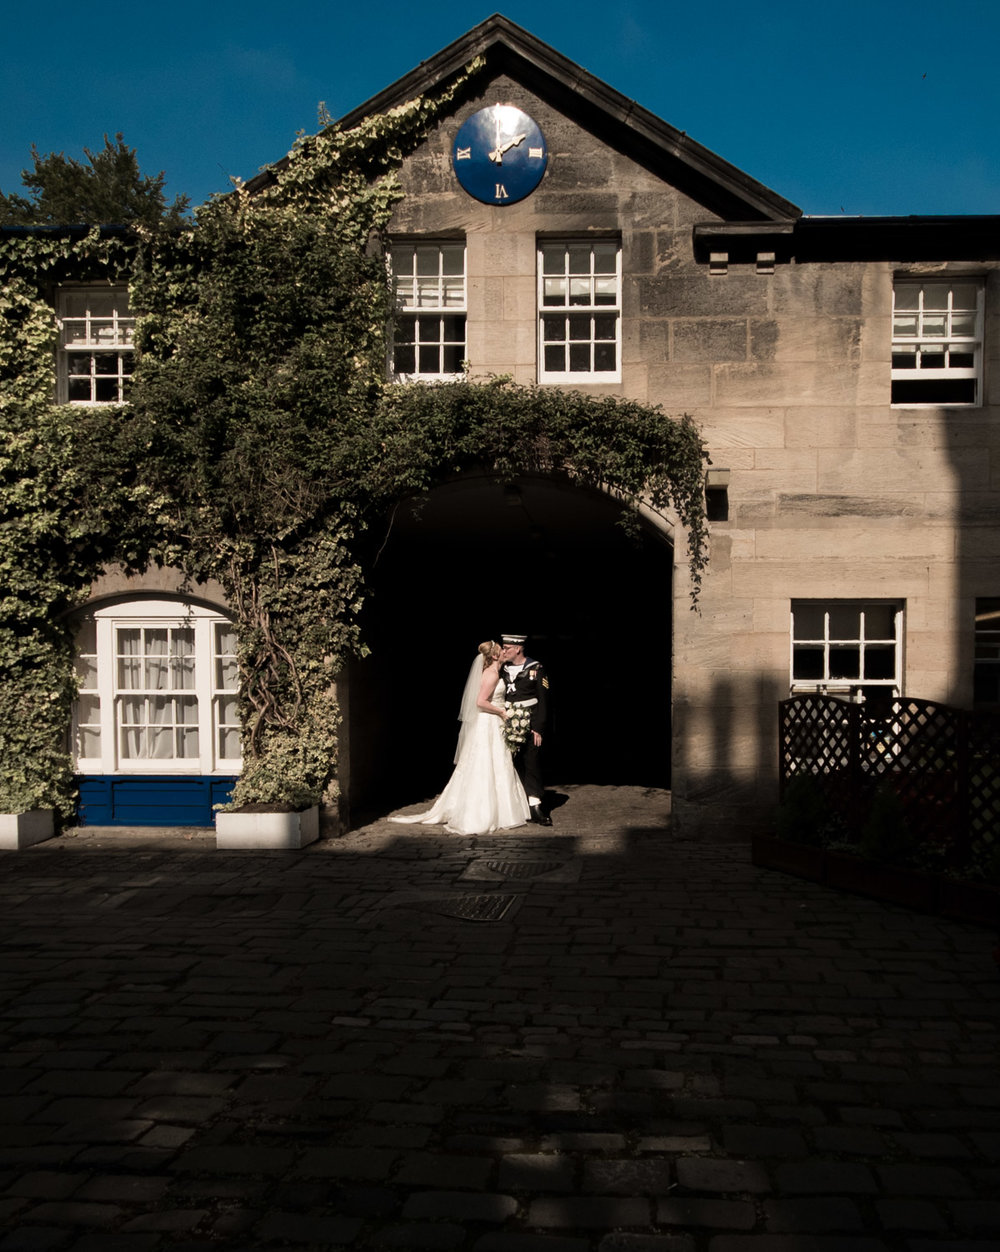 Weddings At Balbirnie House - the clock tower